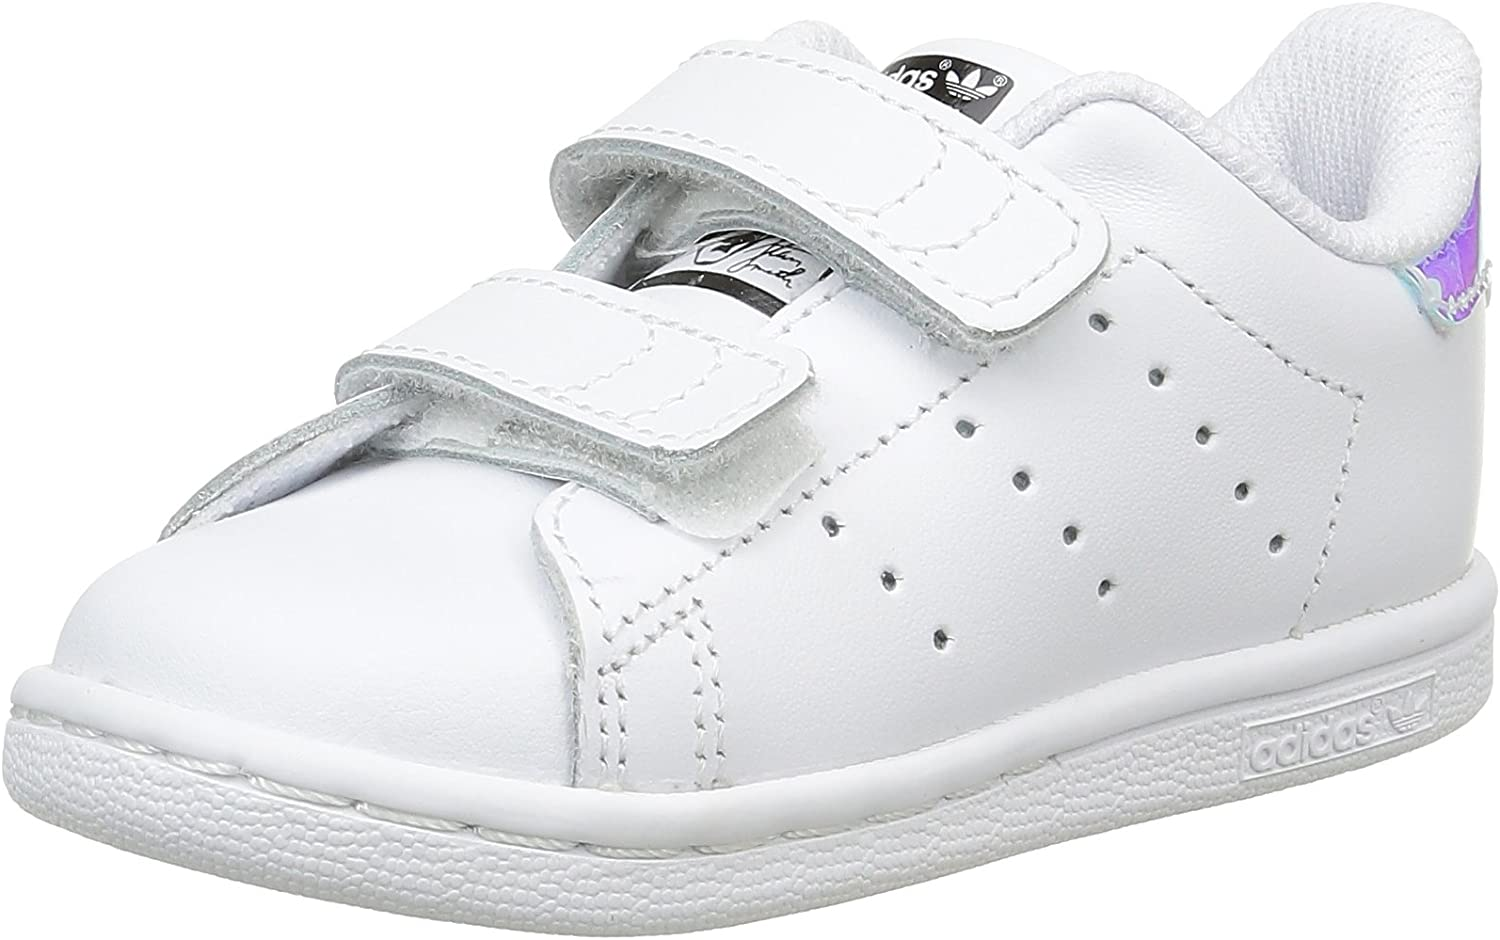 adidas Originals Stan Smith leather trainers in white and